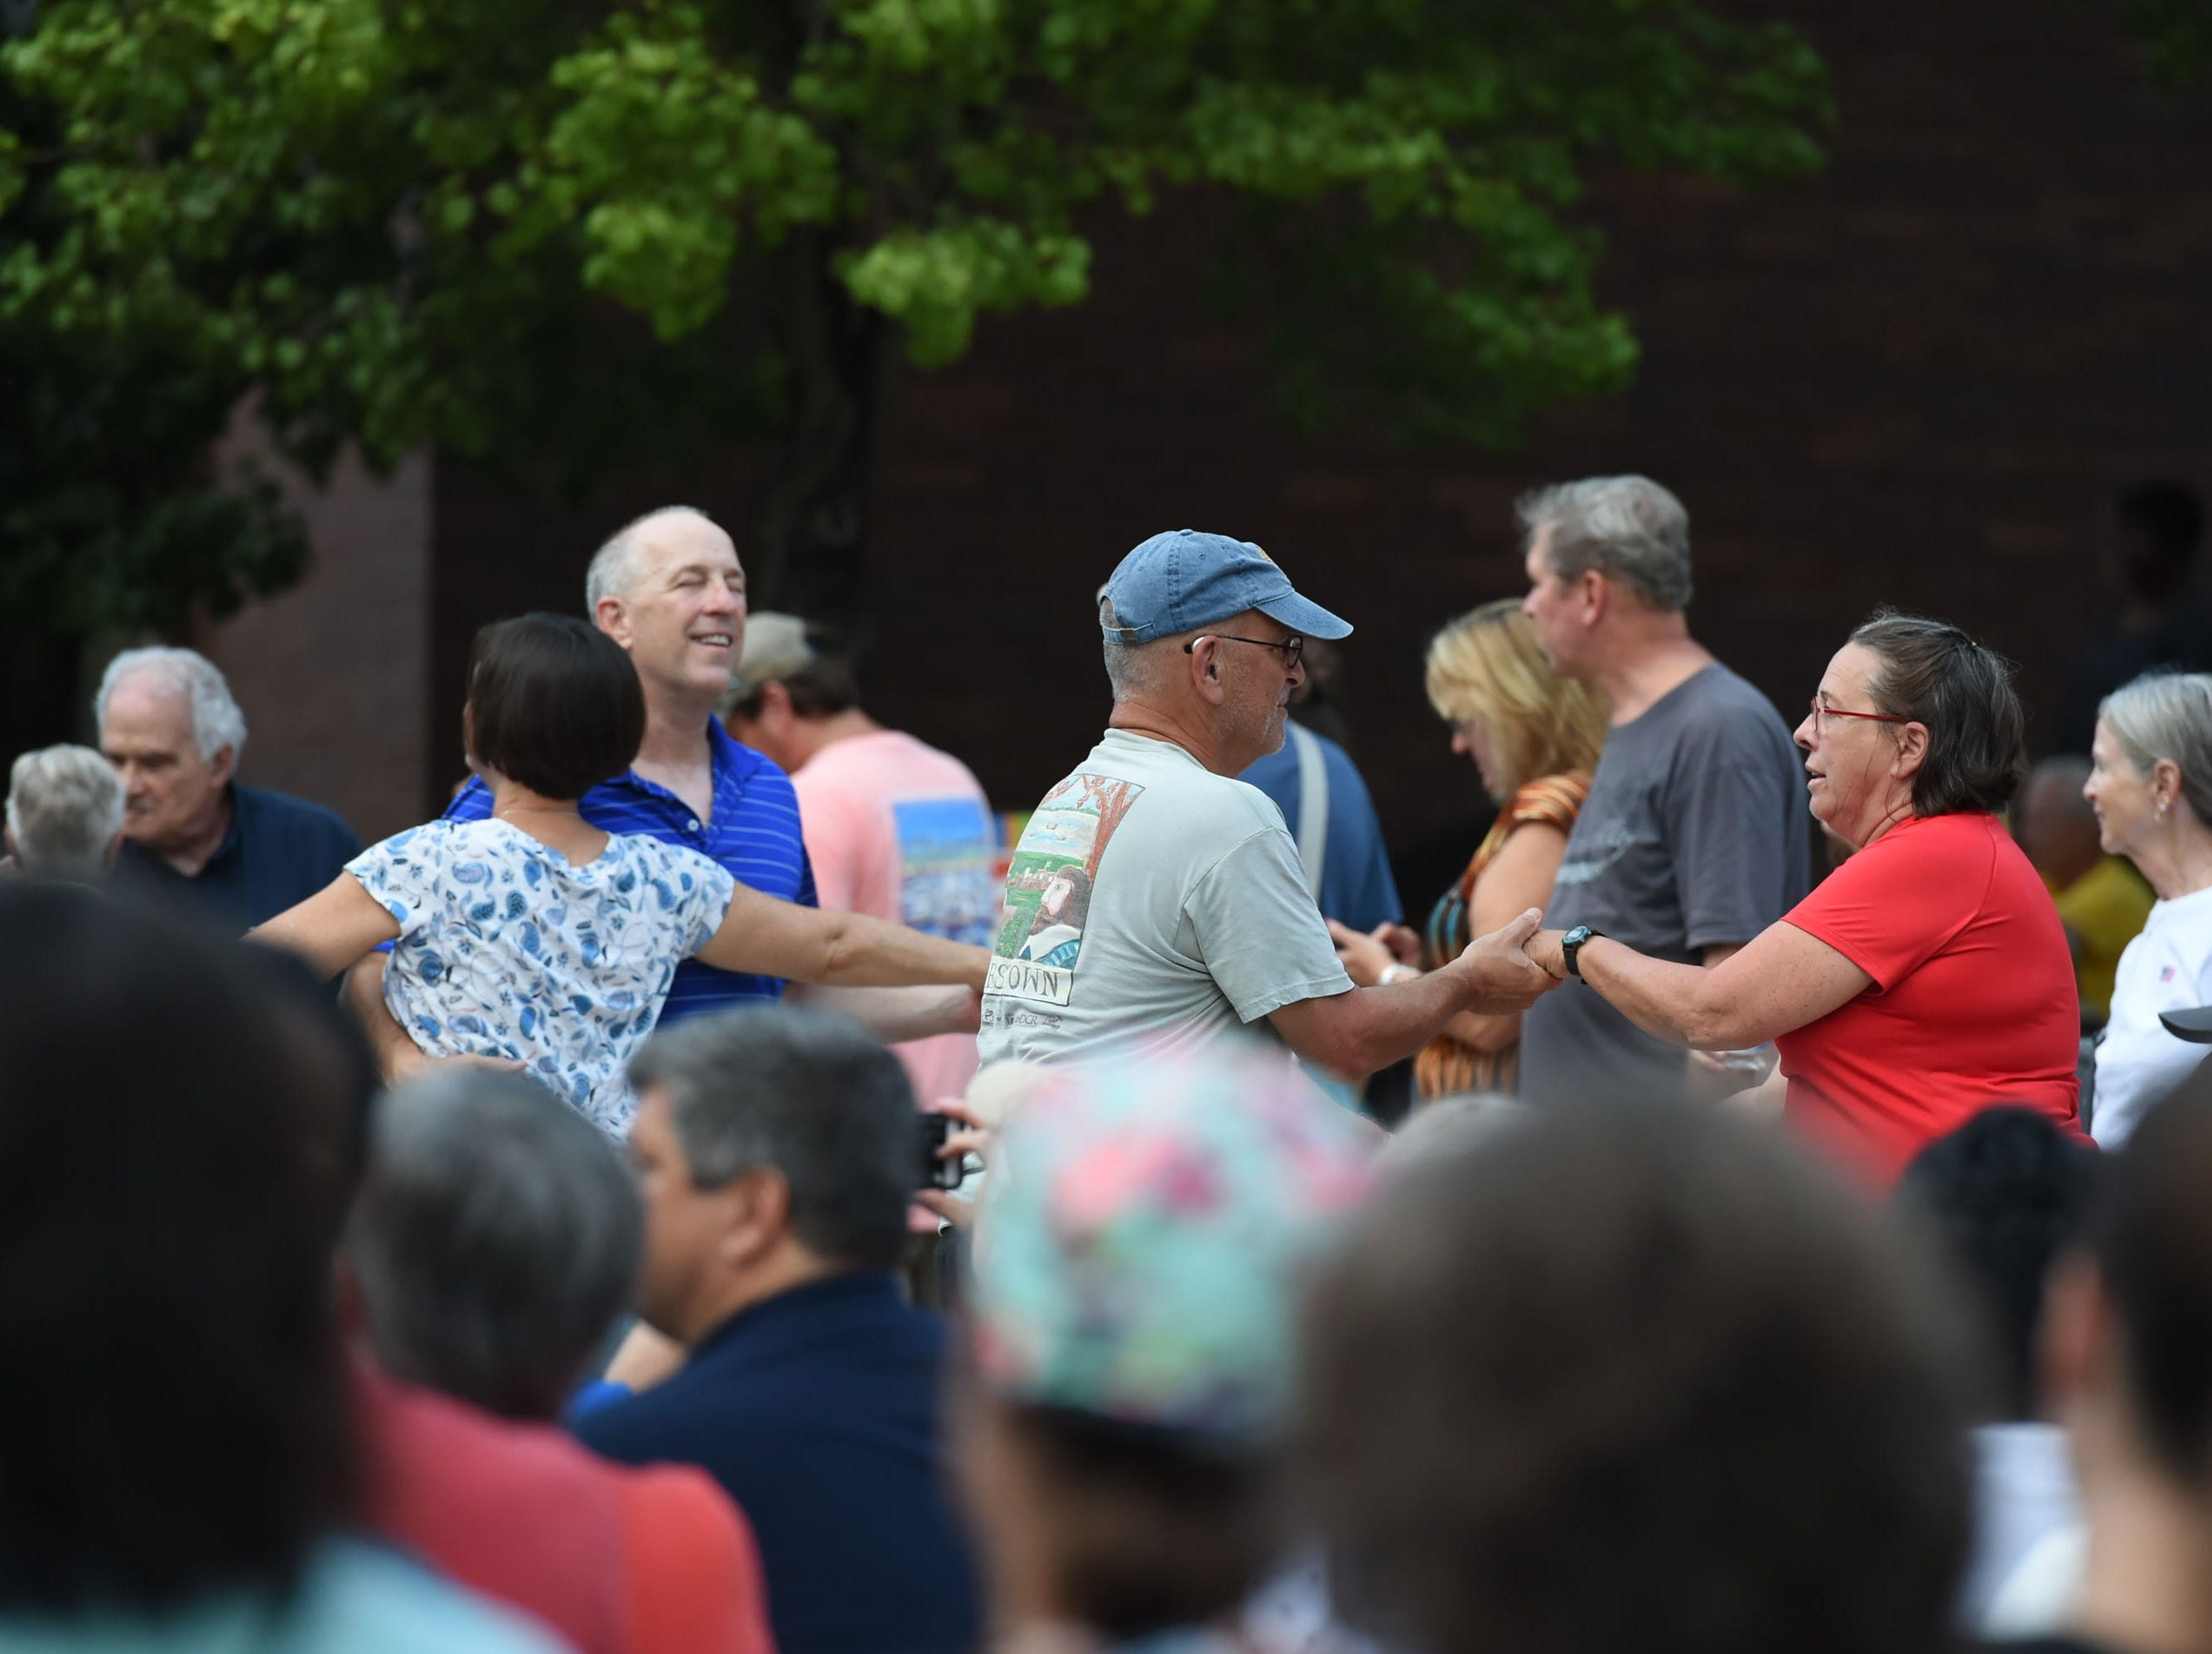 Couples dance in the streets during the kick off of the 78th National Folk Festival on Friday, Sept. 7, 2018.